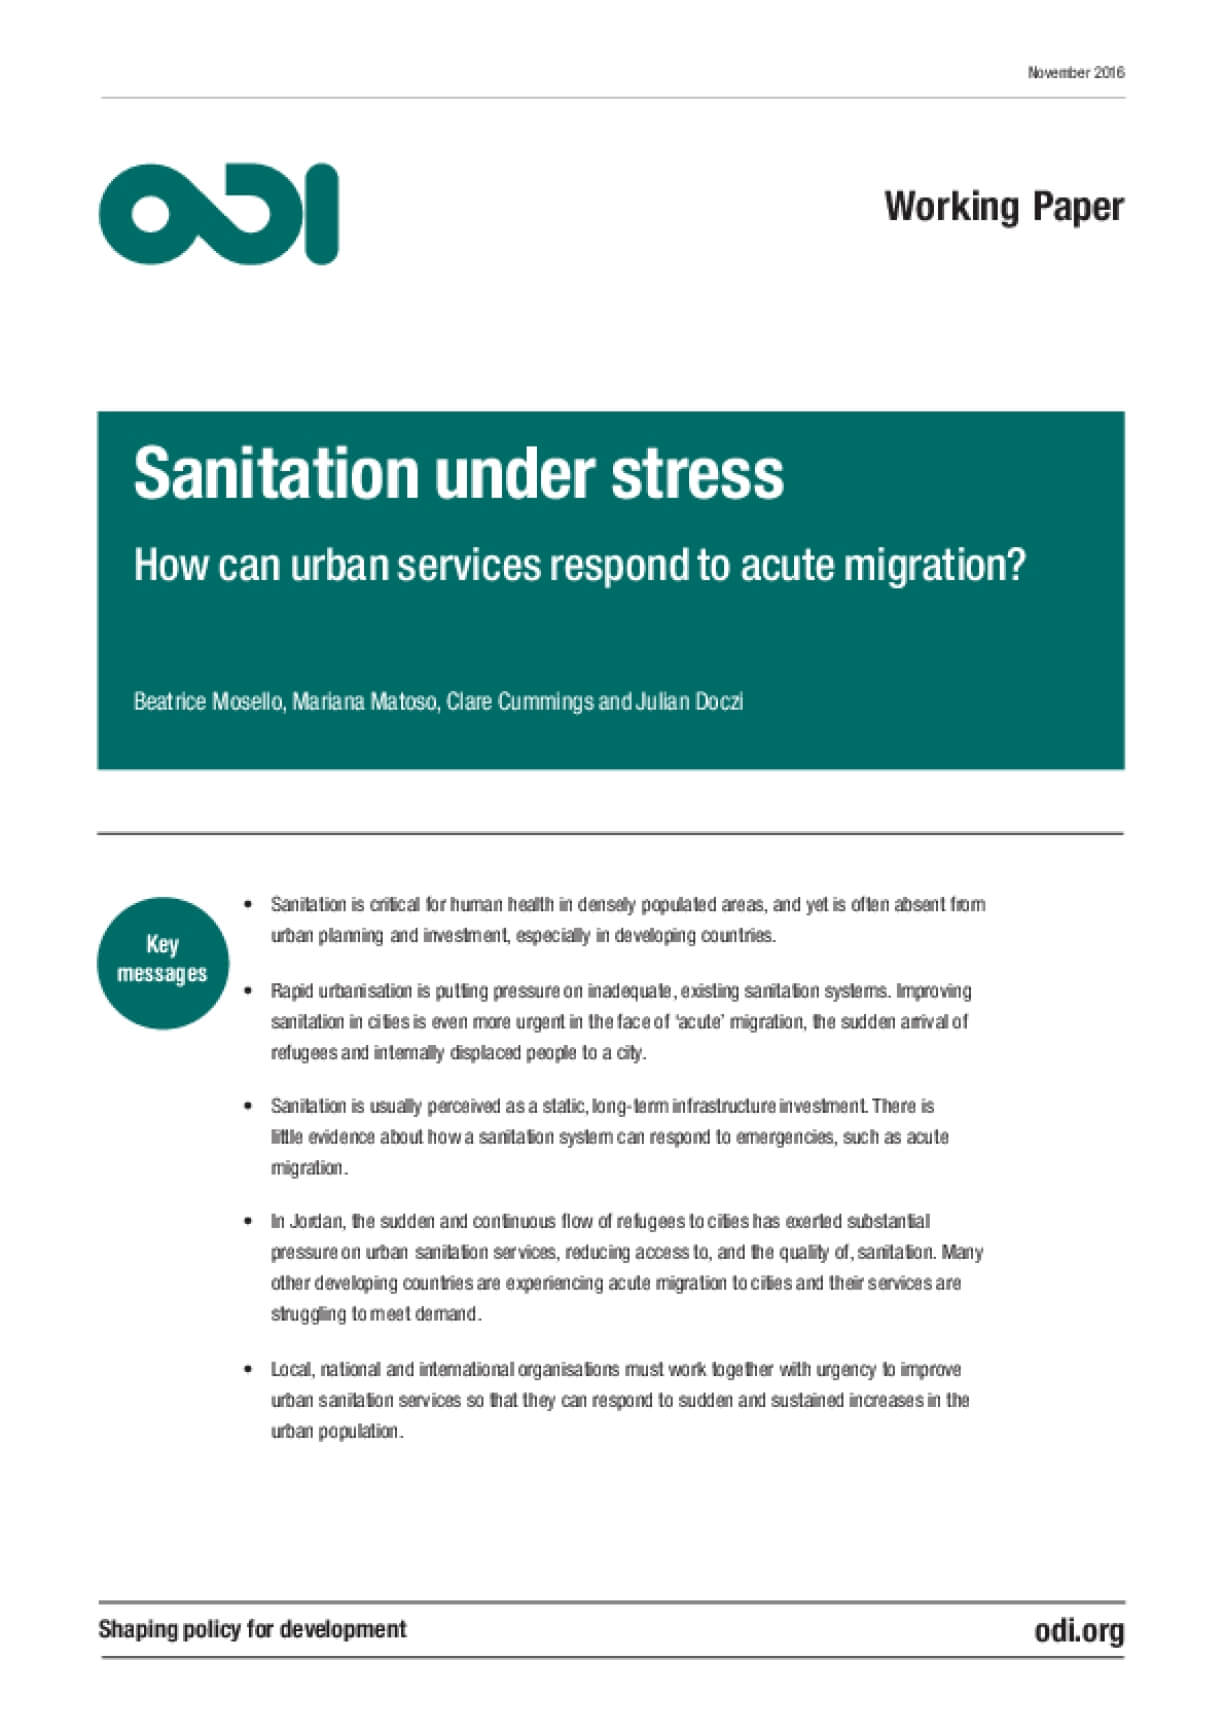 Sanitation under Stress: How Can Urban Services Respond to Acute Migration?